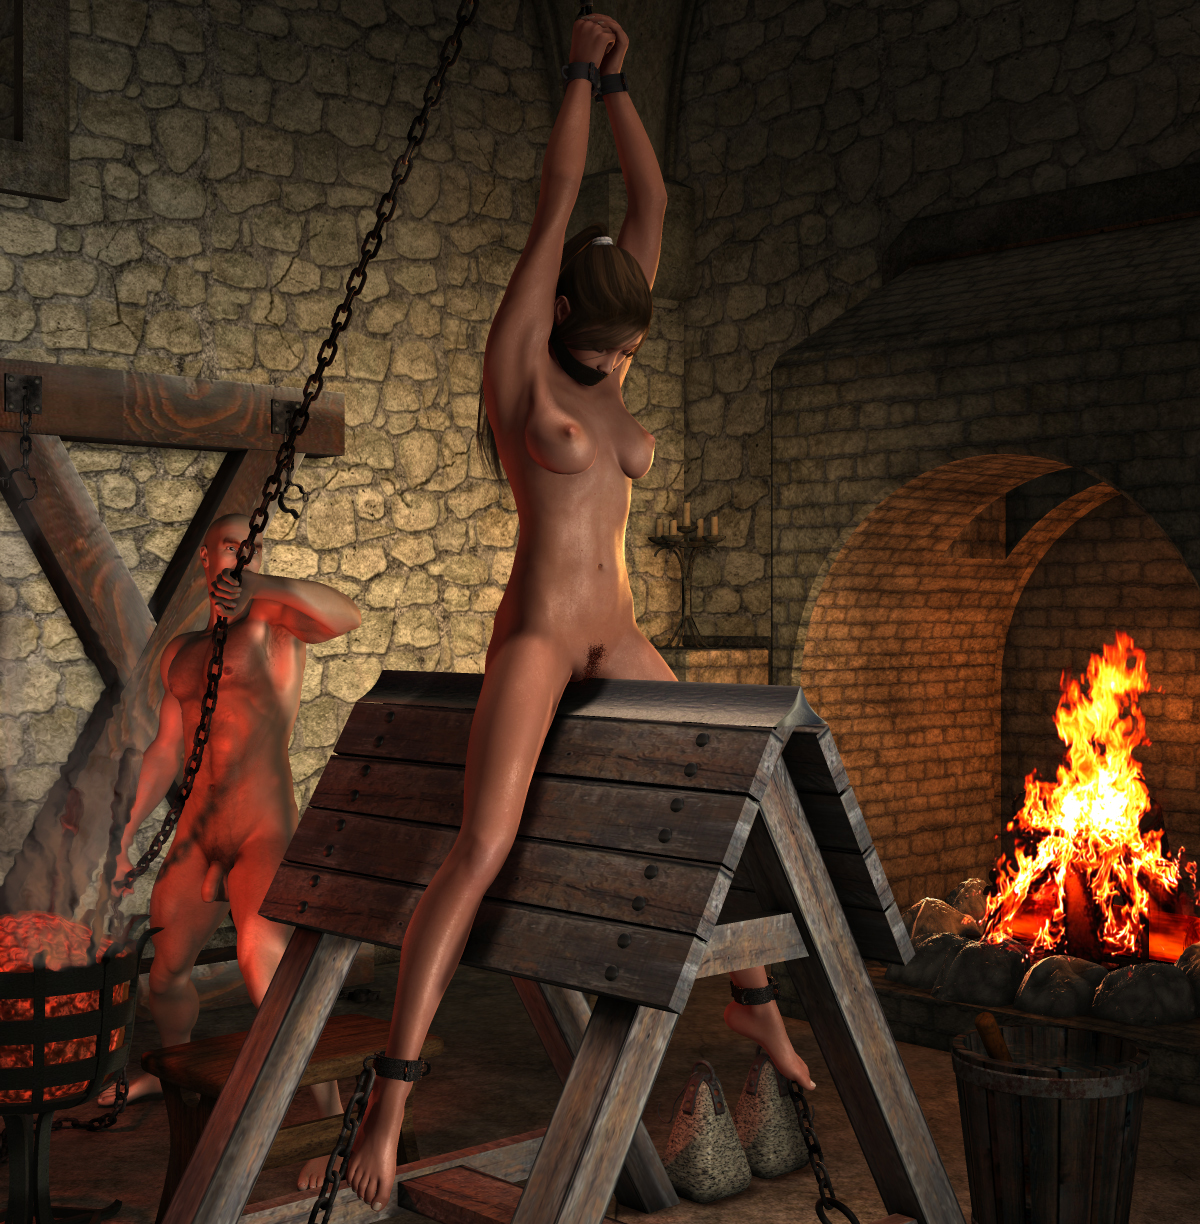 Witches medieval torture porno pics naked video